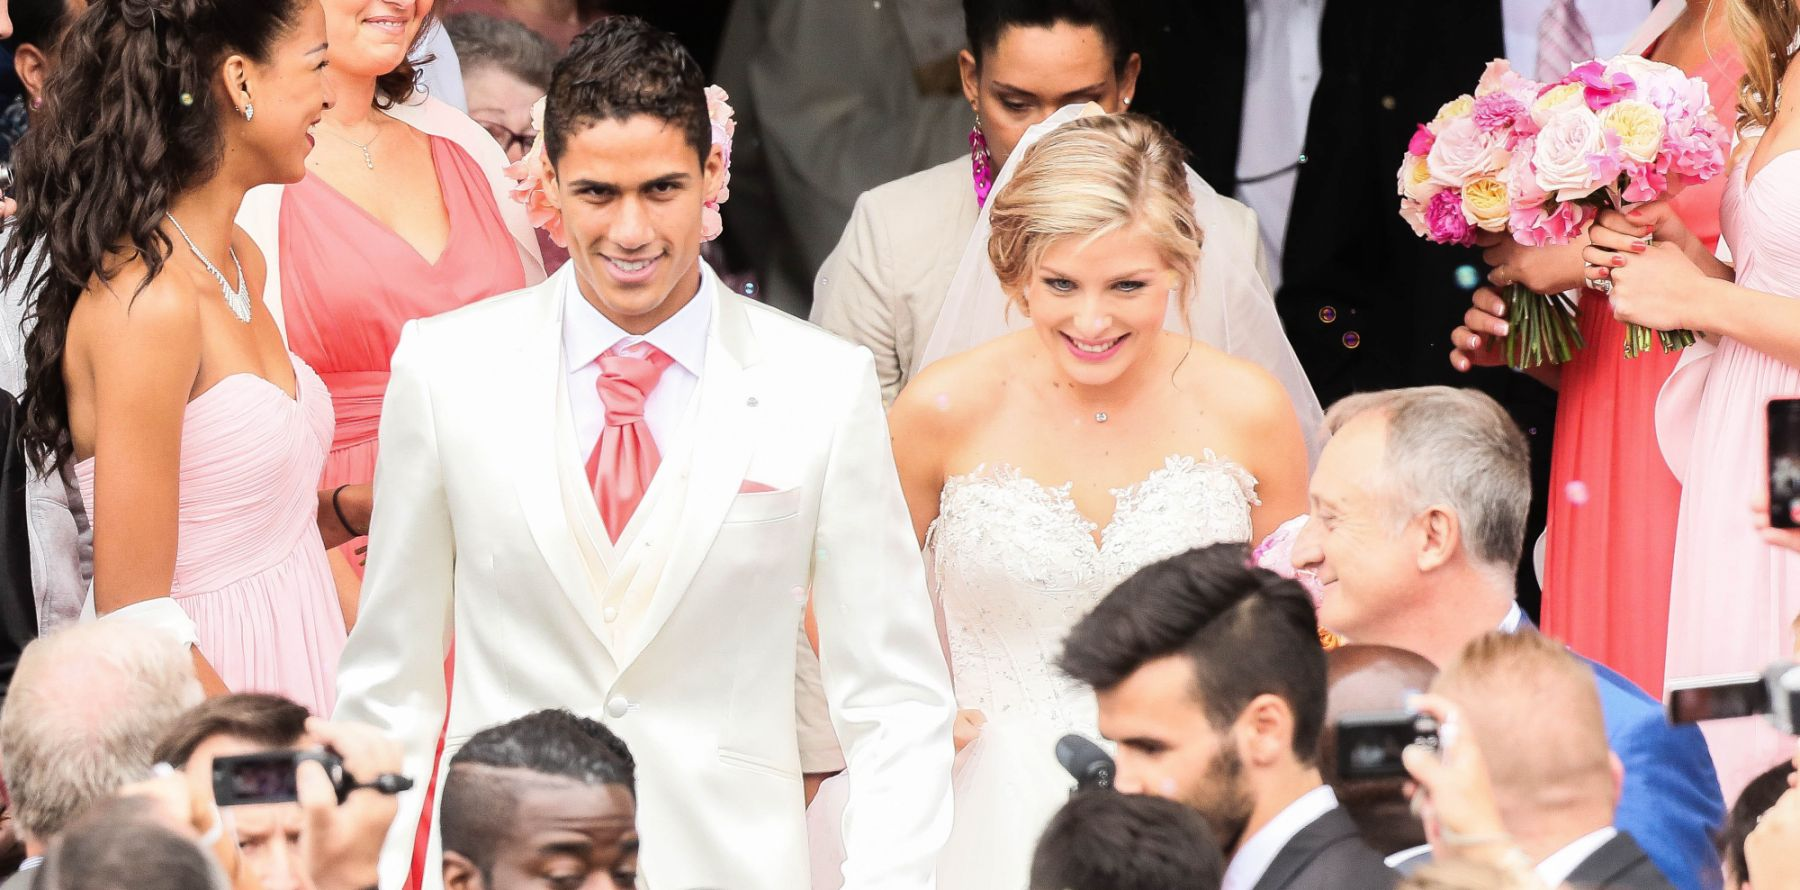 The latest tweets from raphaël varane (@raphaelvarane). Raphaël Varane Parents / Raphael Varane the silent GIANT ...